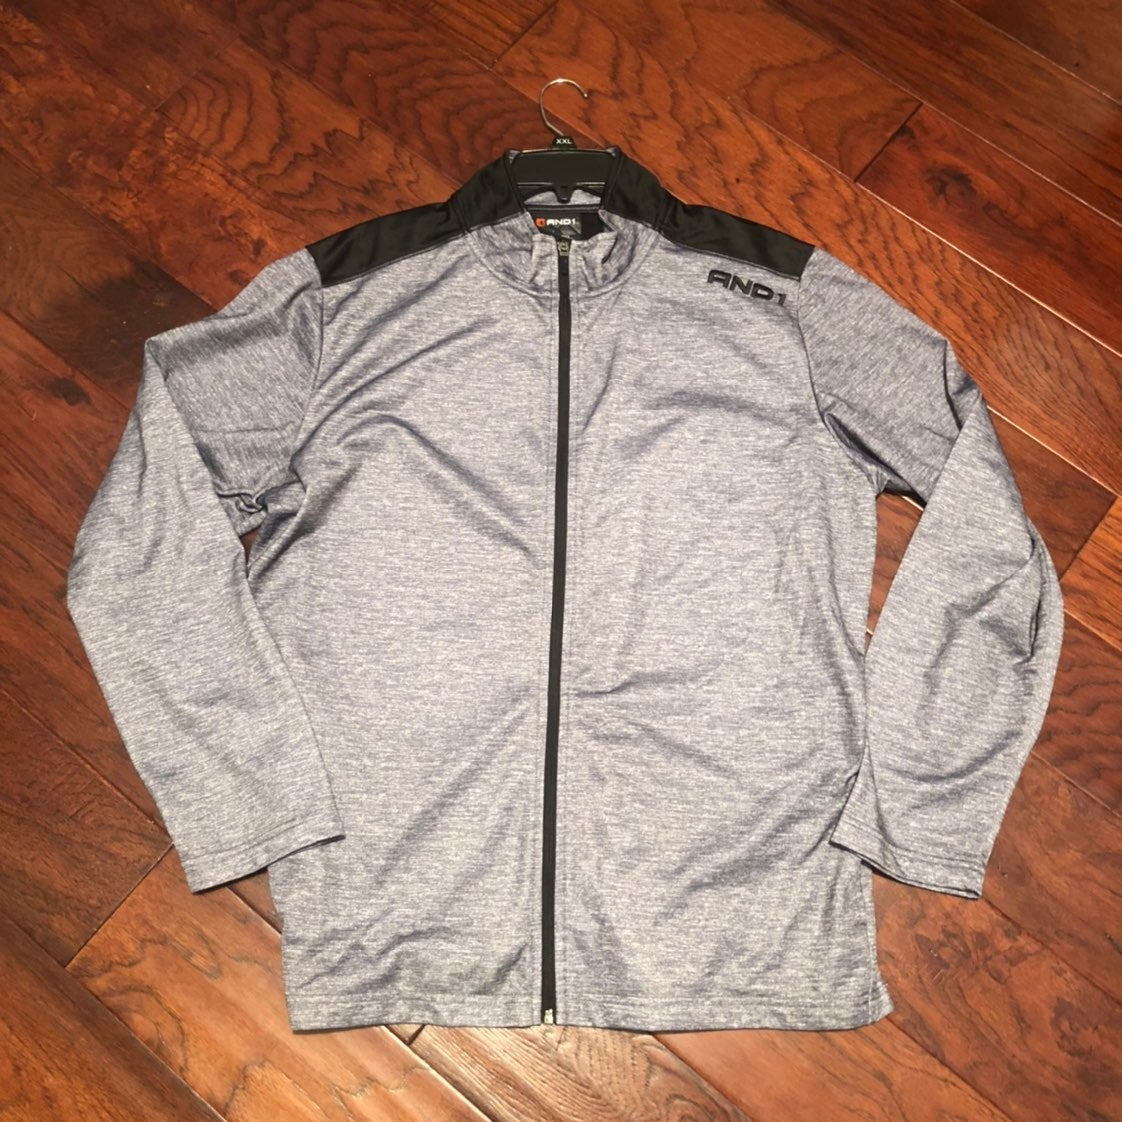 And1 mens zip up track jacket xl